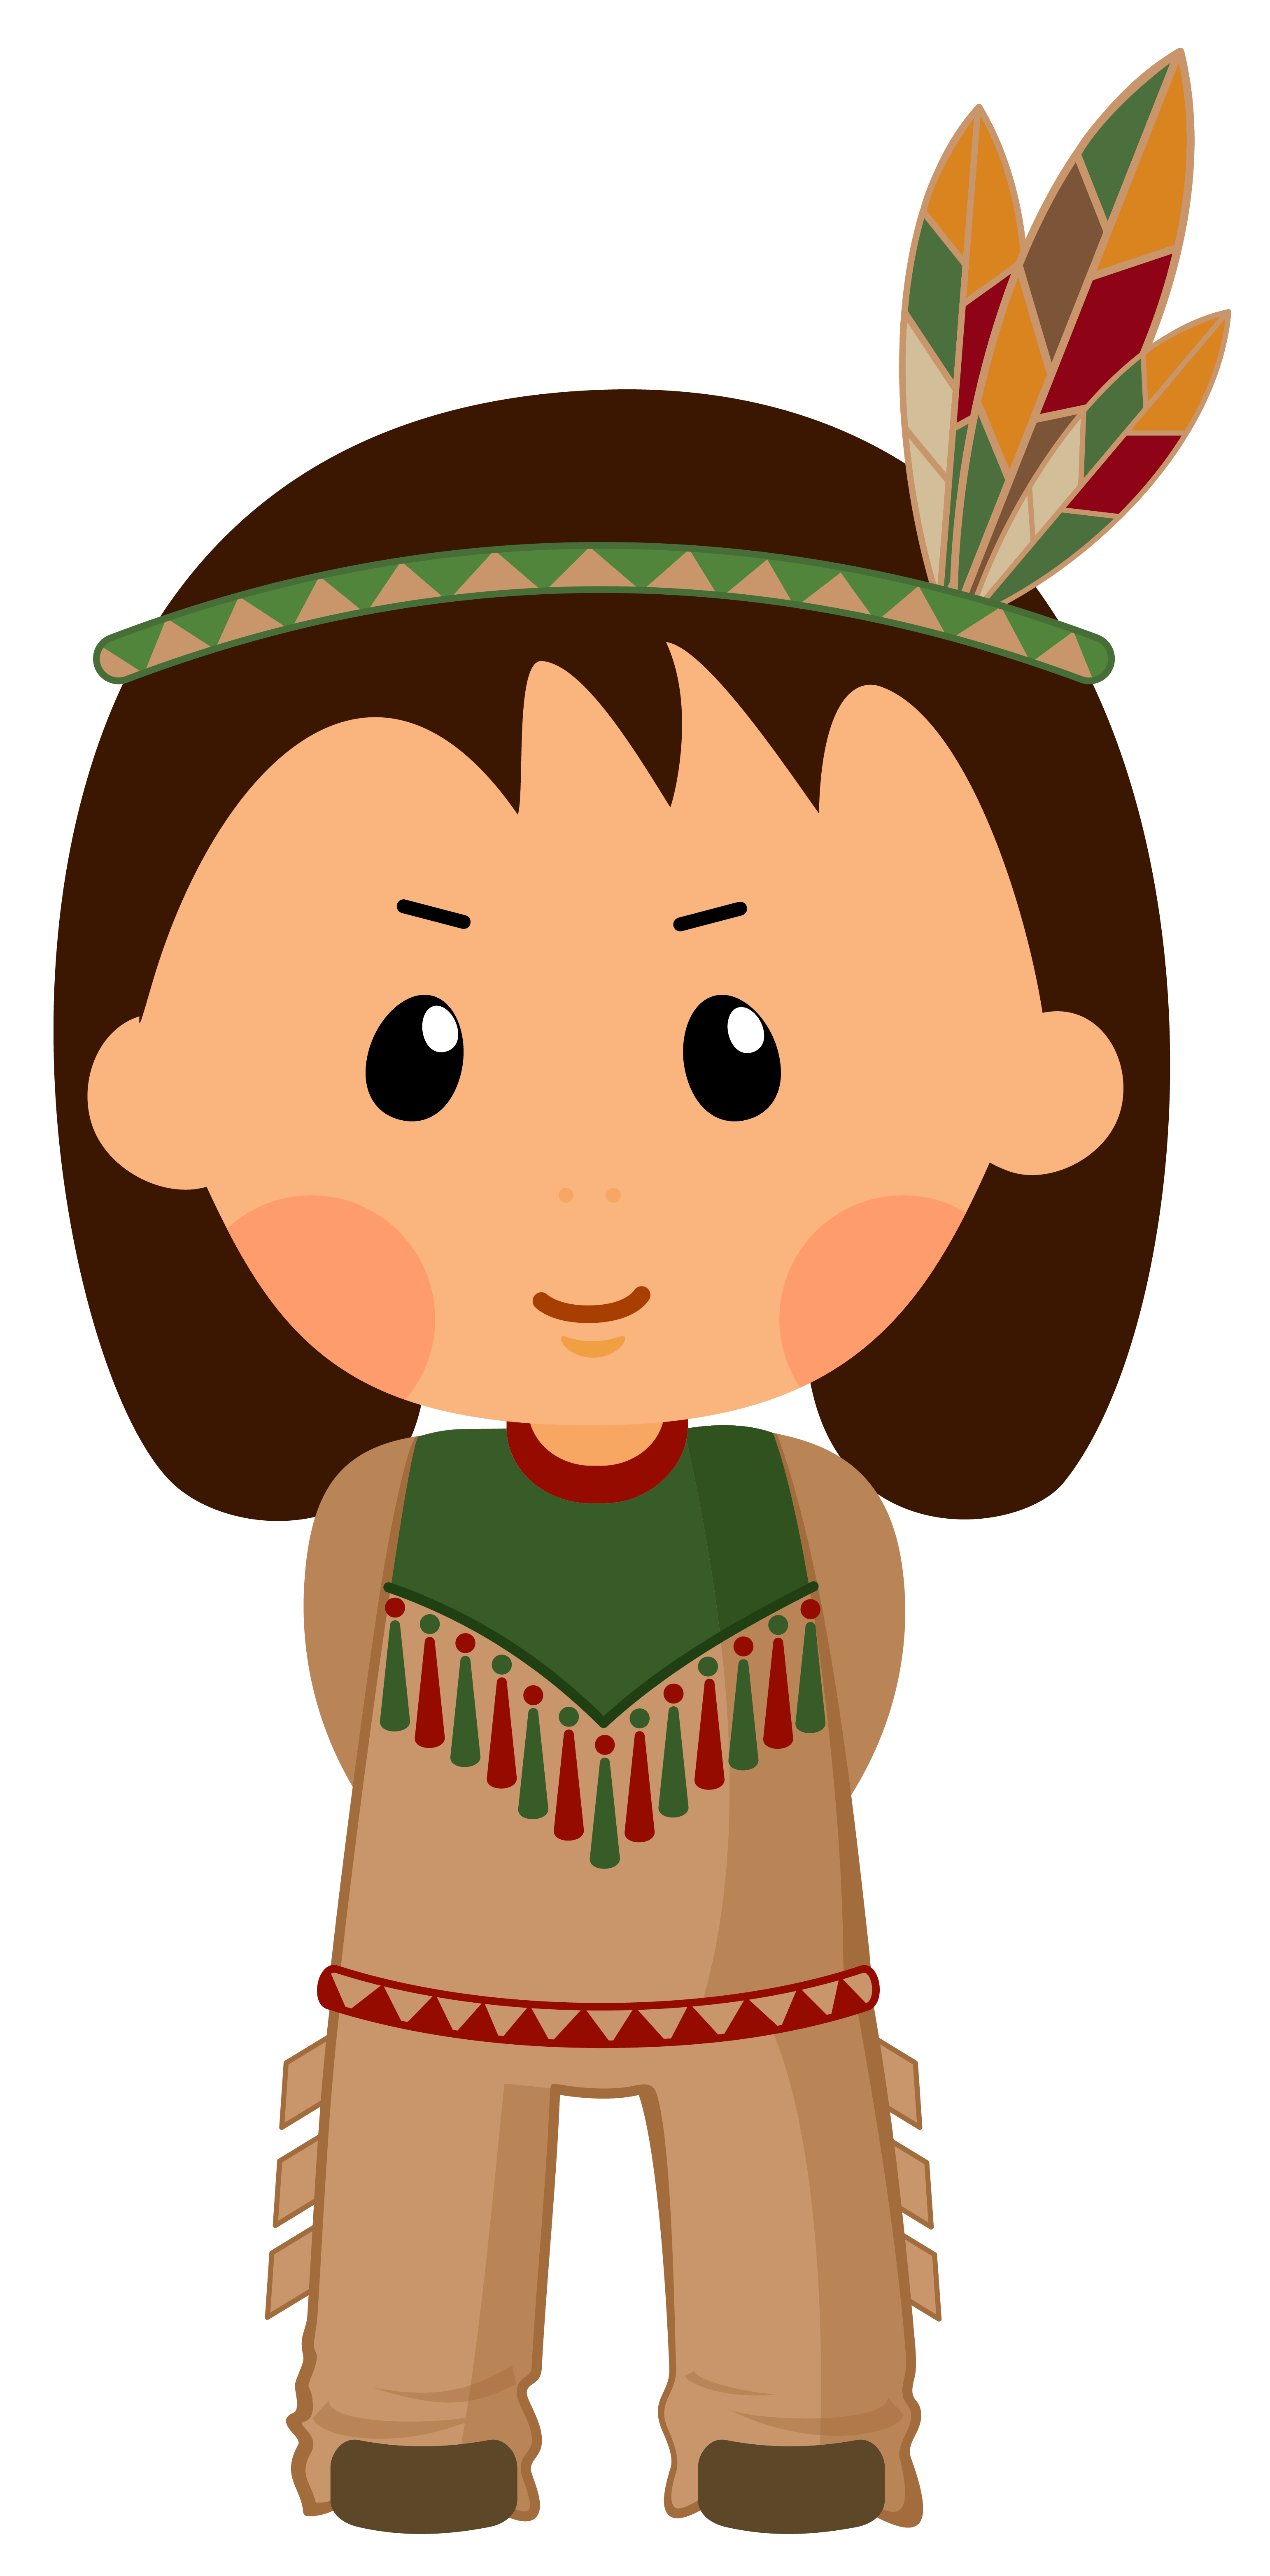 Native american boy png. Clipart thanksgiving child